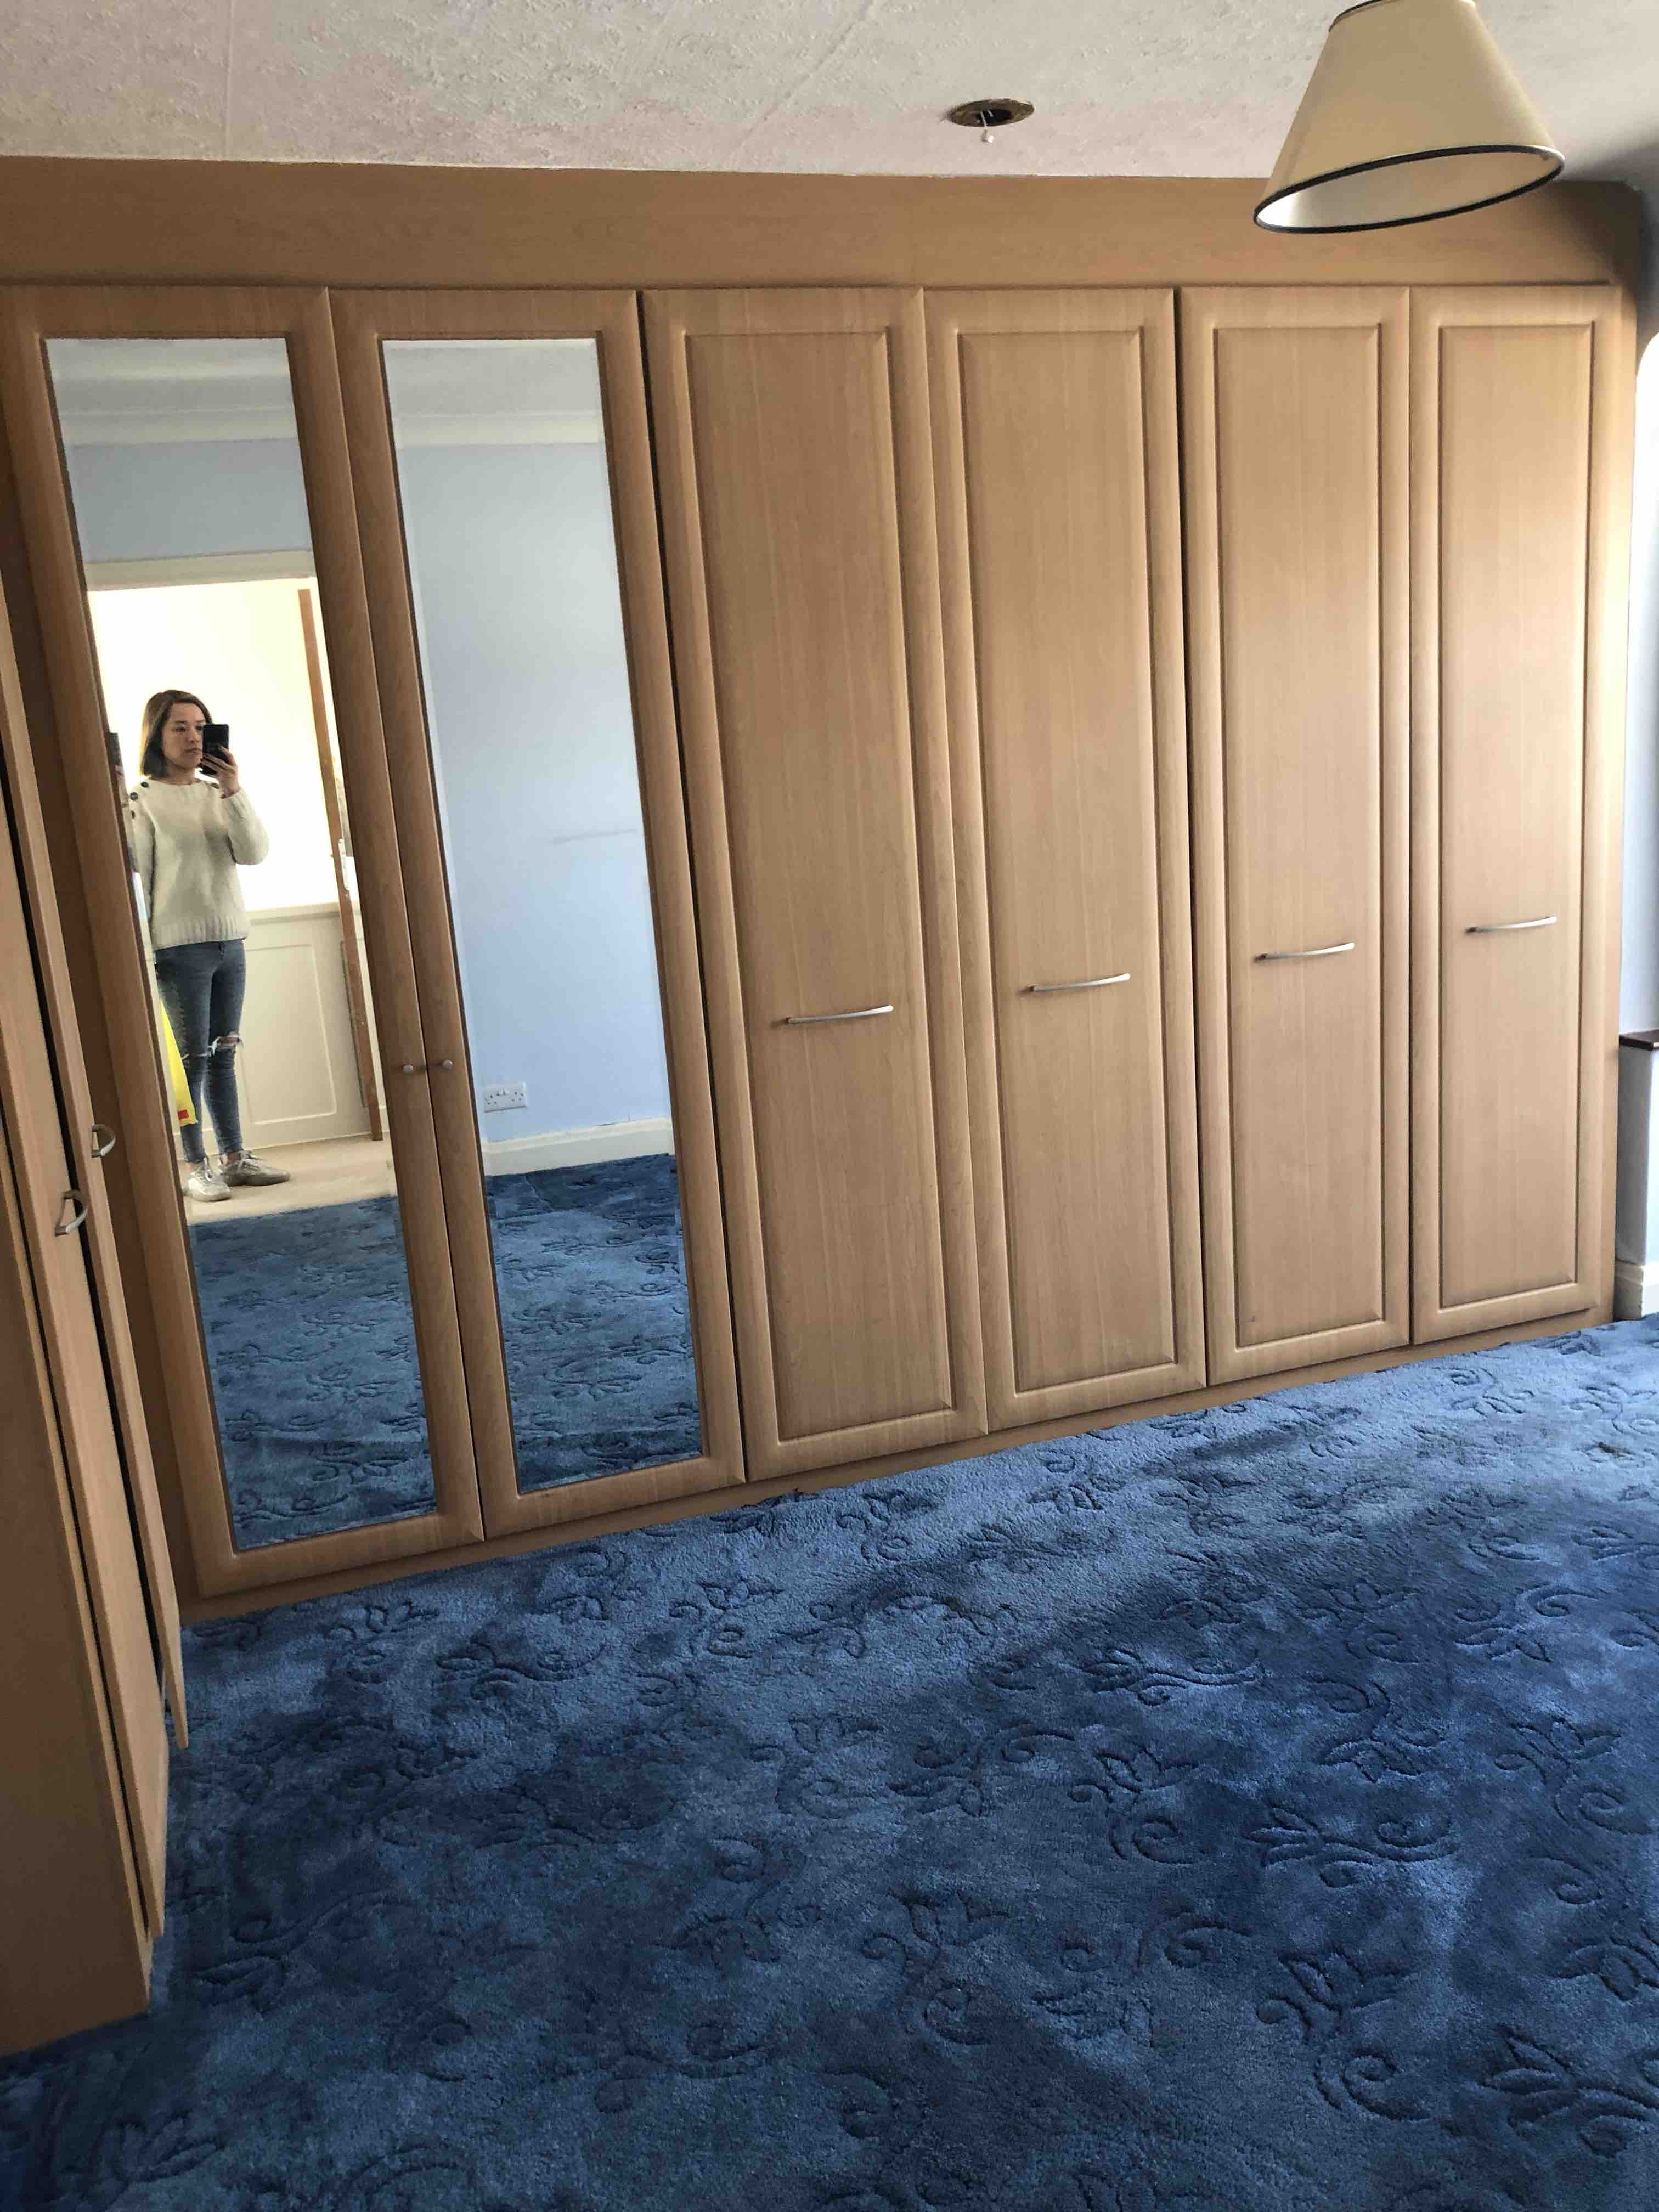 1 room in Stopsley, Luton, LU2 9AB RoomsLocal image